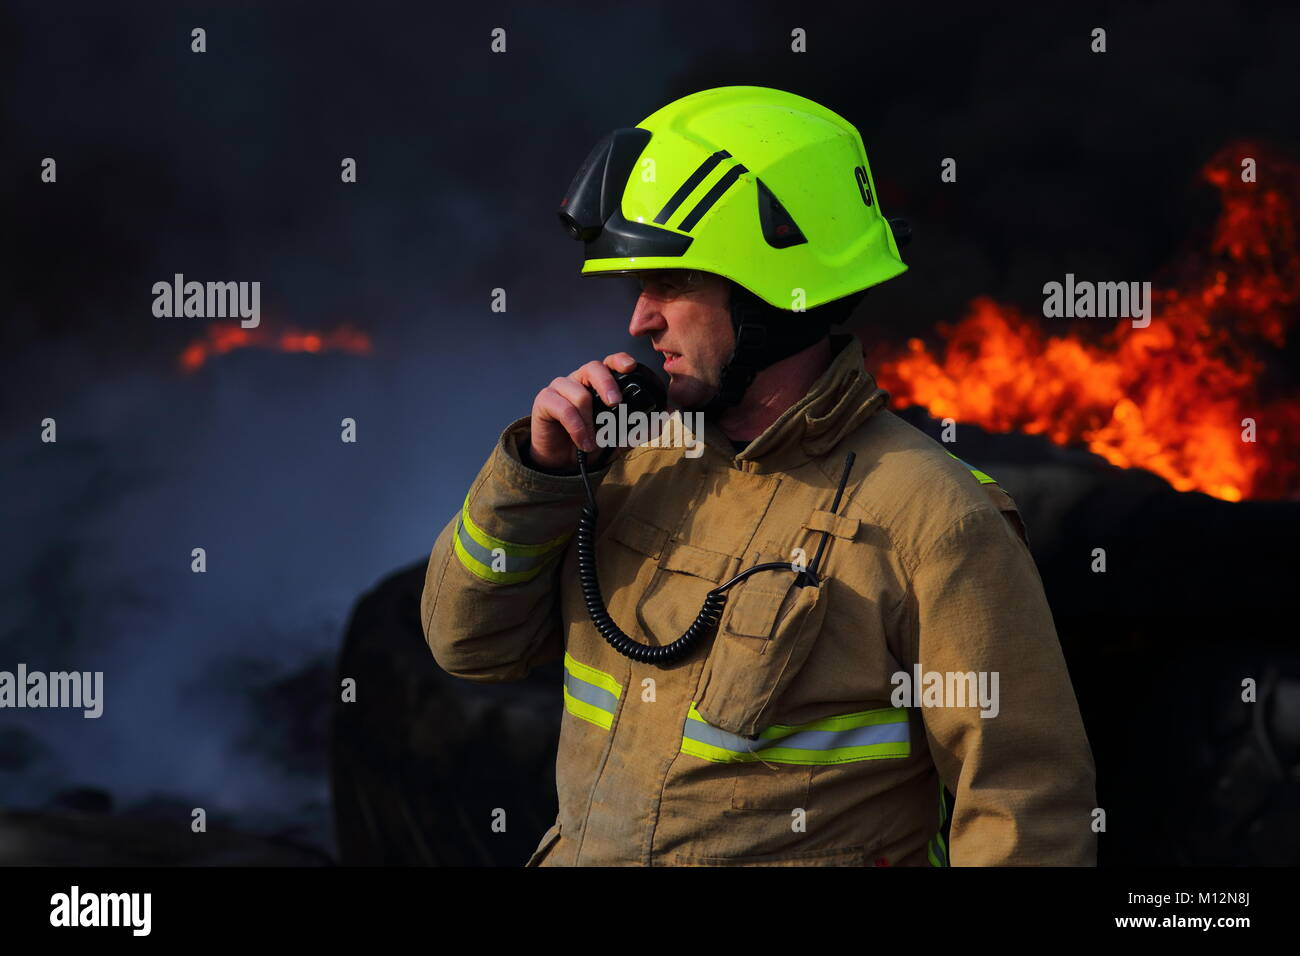 Fireman In Action - Stock Image